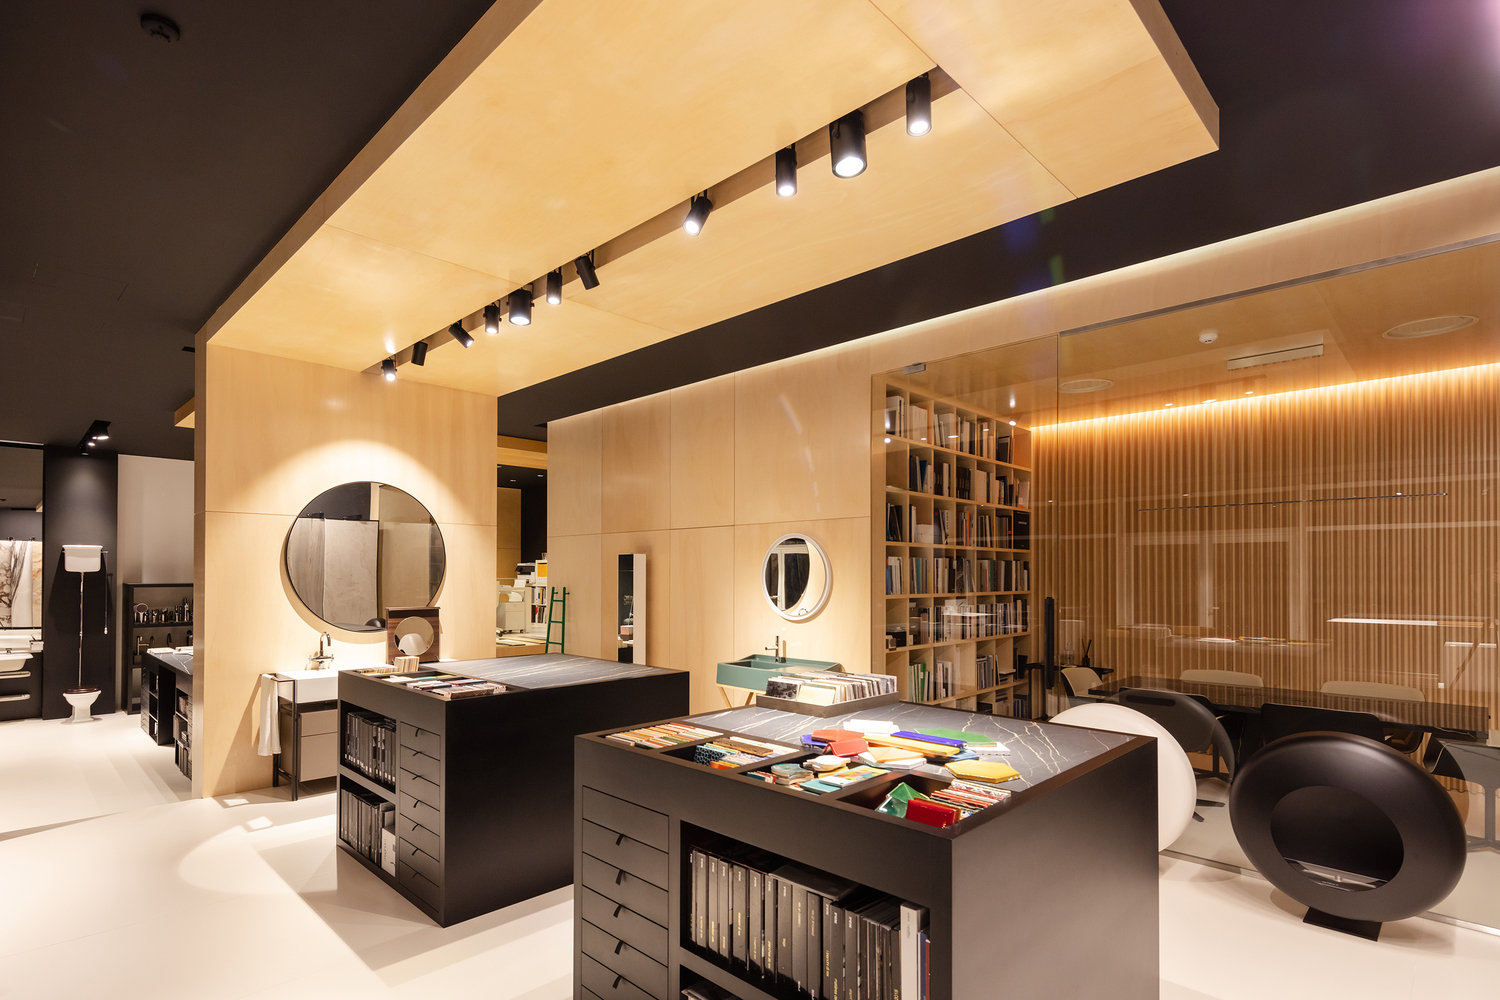 Showroom Balnenum Design / RH+ Arquitectos